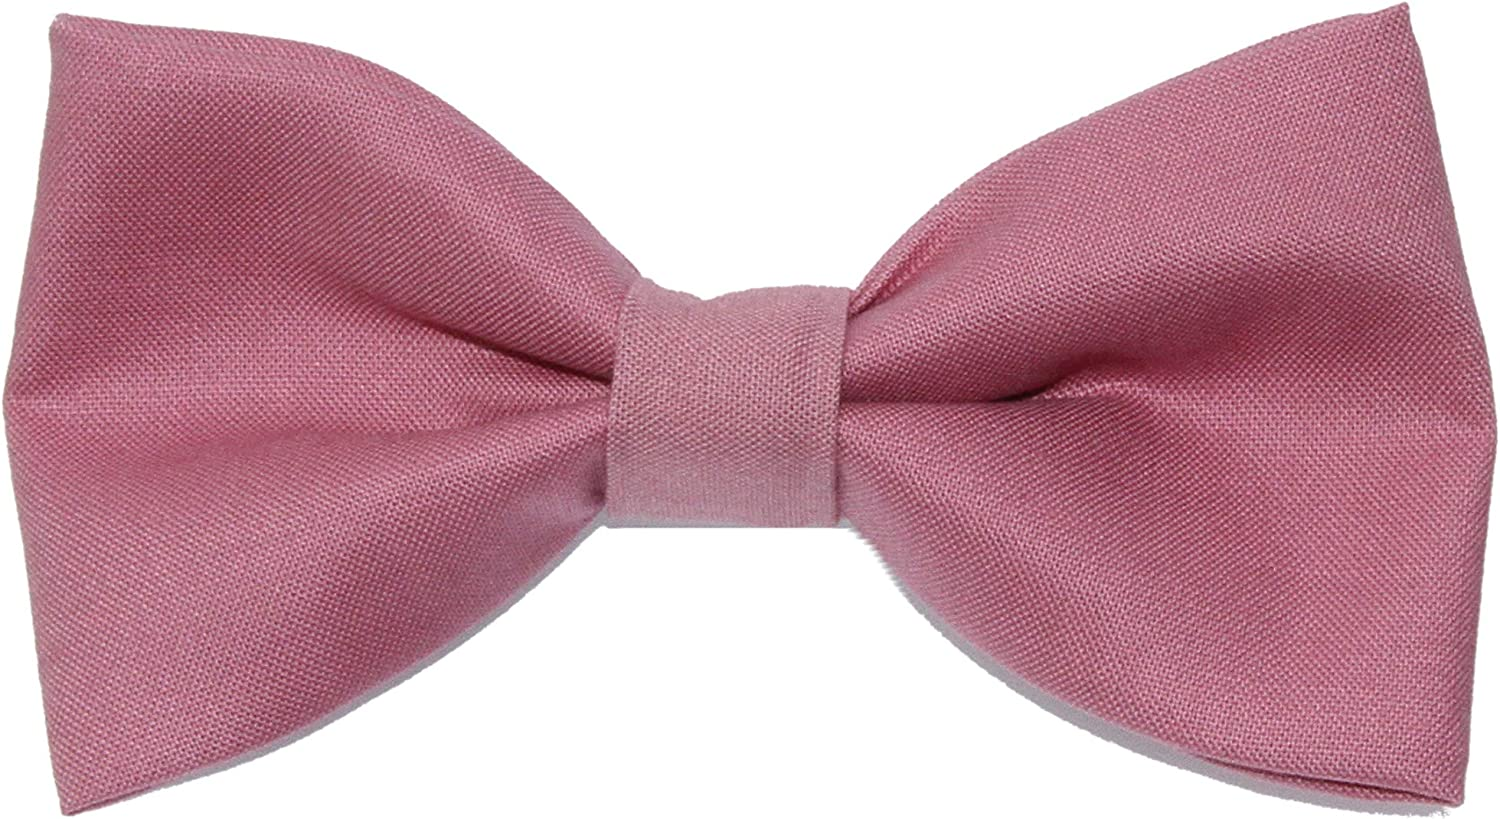 Men's Rose Pink Clip On Cotton Bow Tie Bowtie by amy2004marie